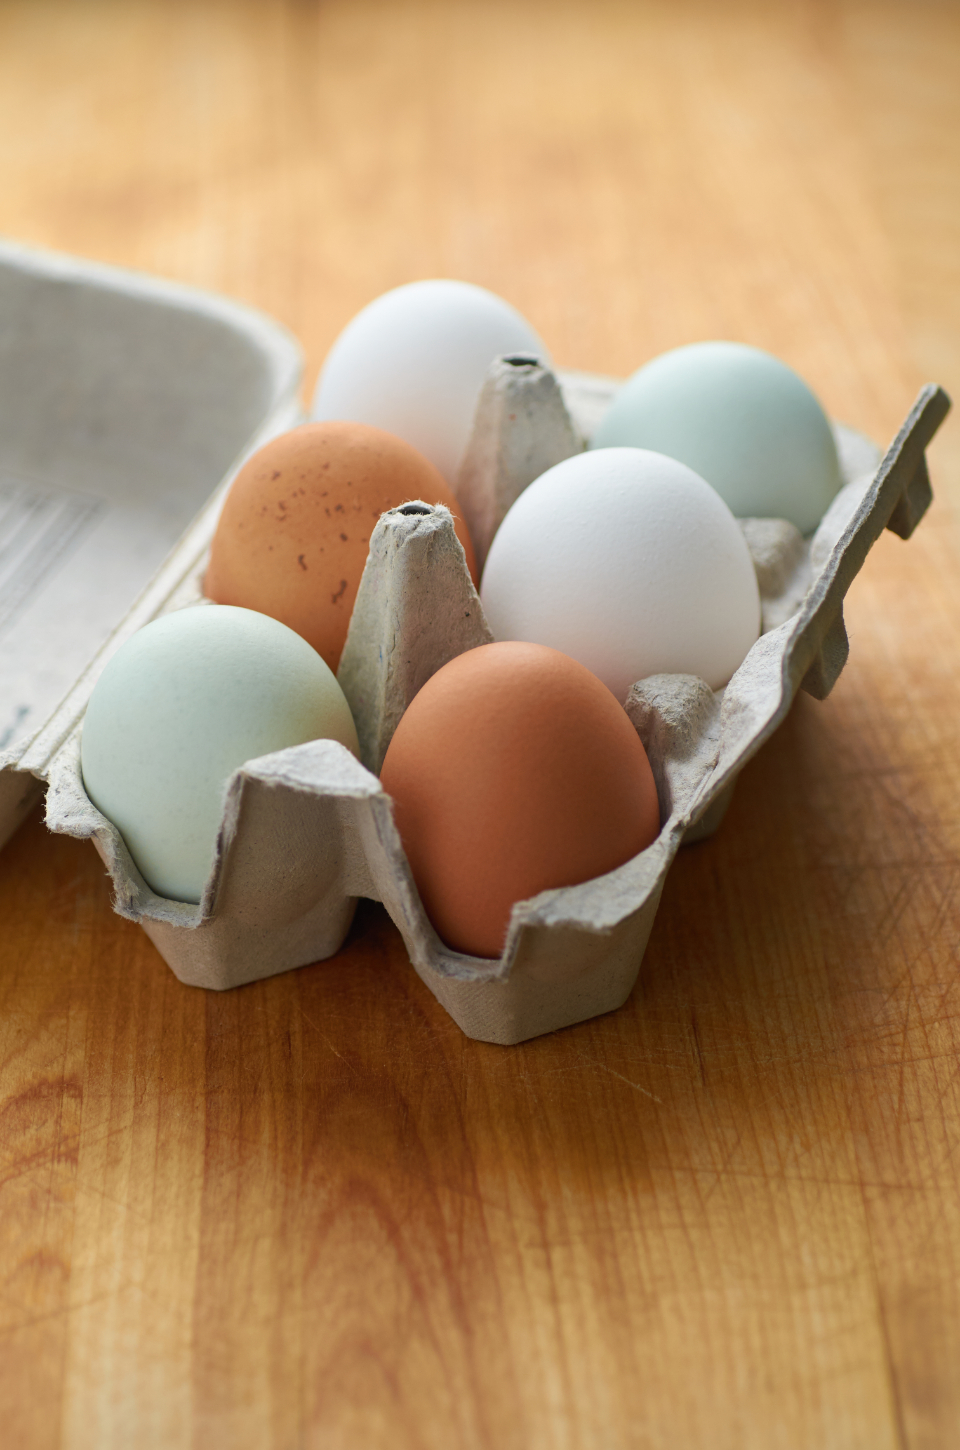 farm fresh eggs half dozen carton chicken color shell egg organic raw wood table